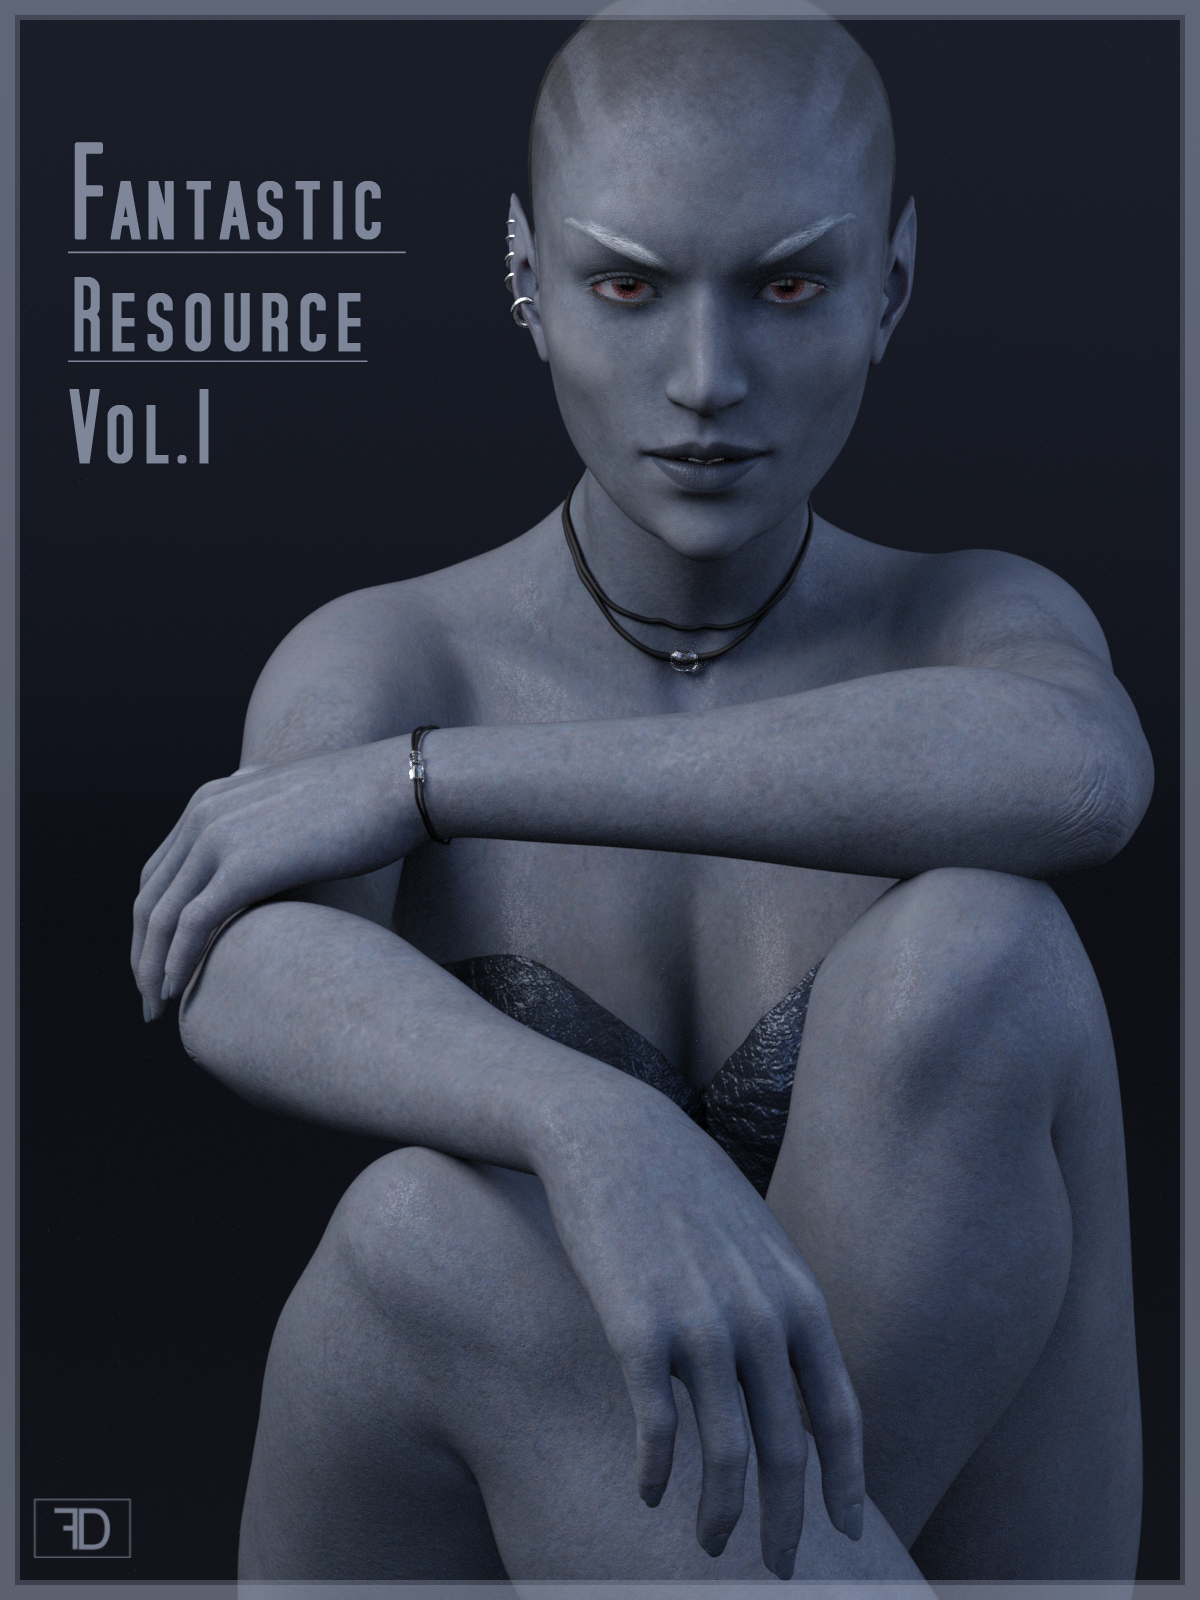 Fantastic Resource Vol.1 for G3F